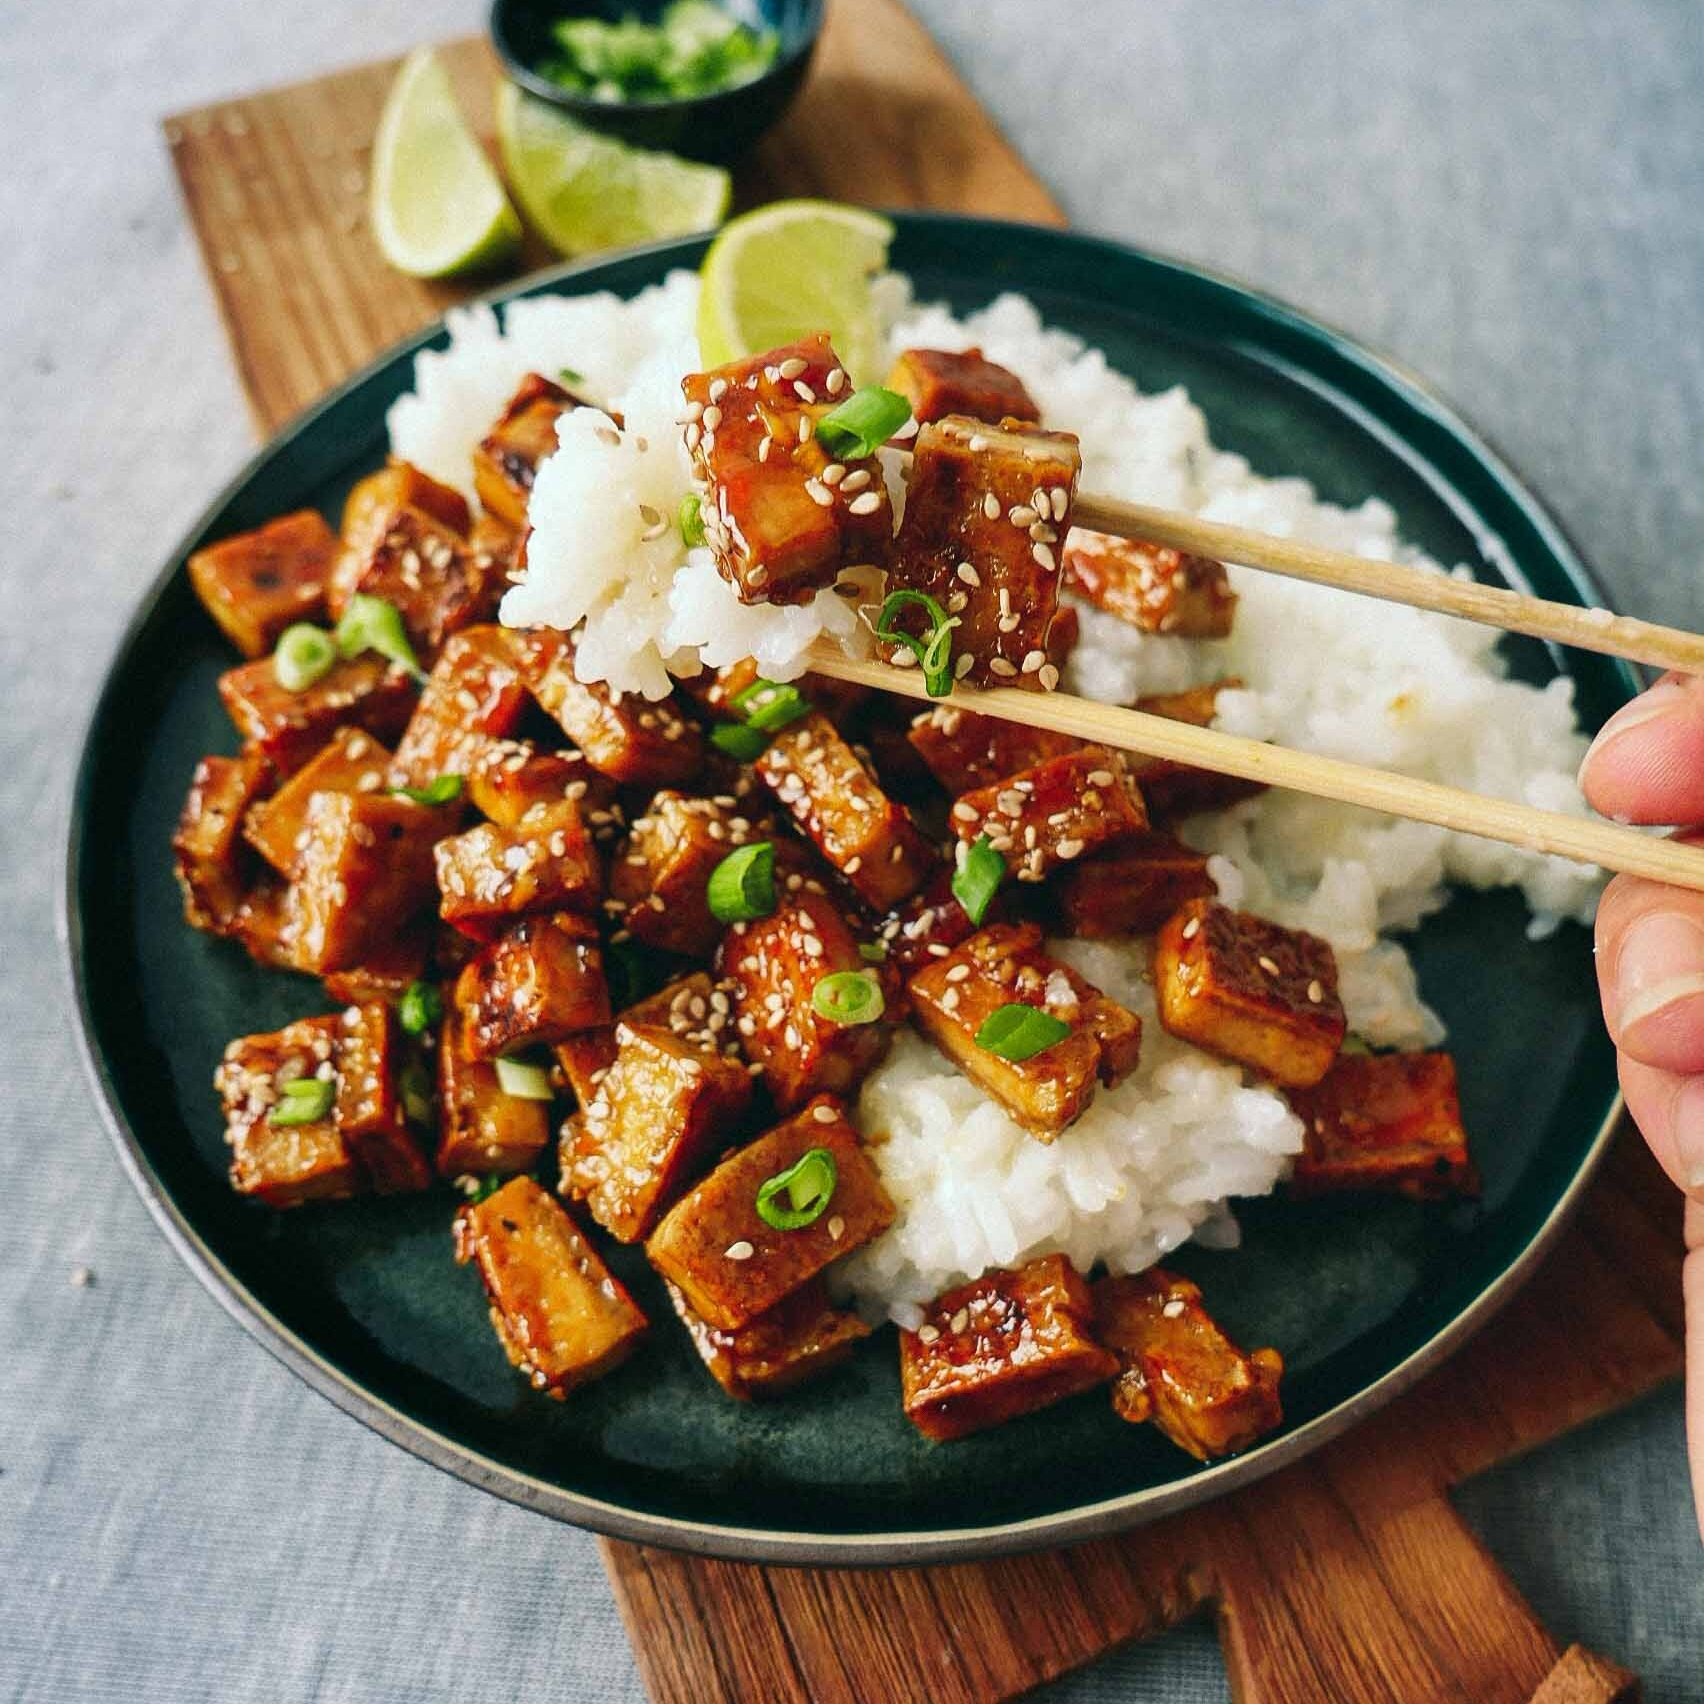 Sweet fried tofu